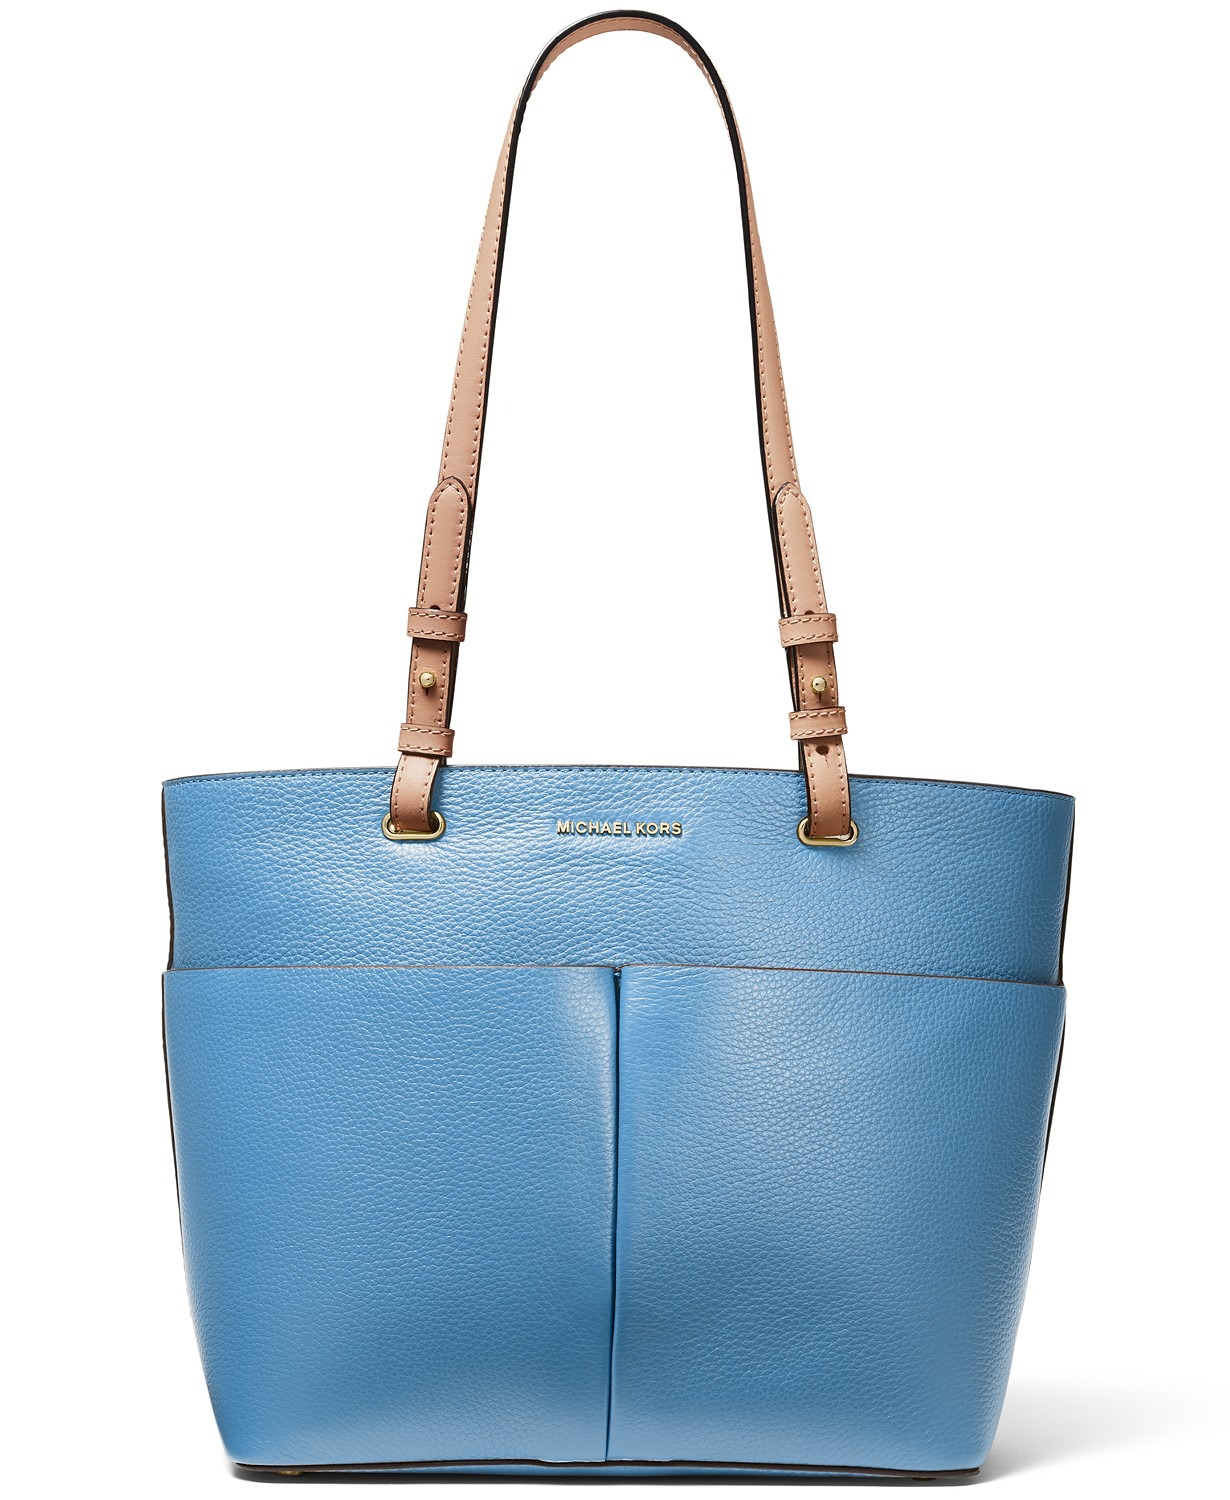 TÚI XÁCH MICHAEL KORS BEDFORD PEBBLE LEATHER POCKET TOTE, SOUTH PACIFIC / GOLD